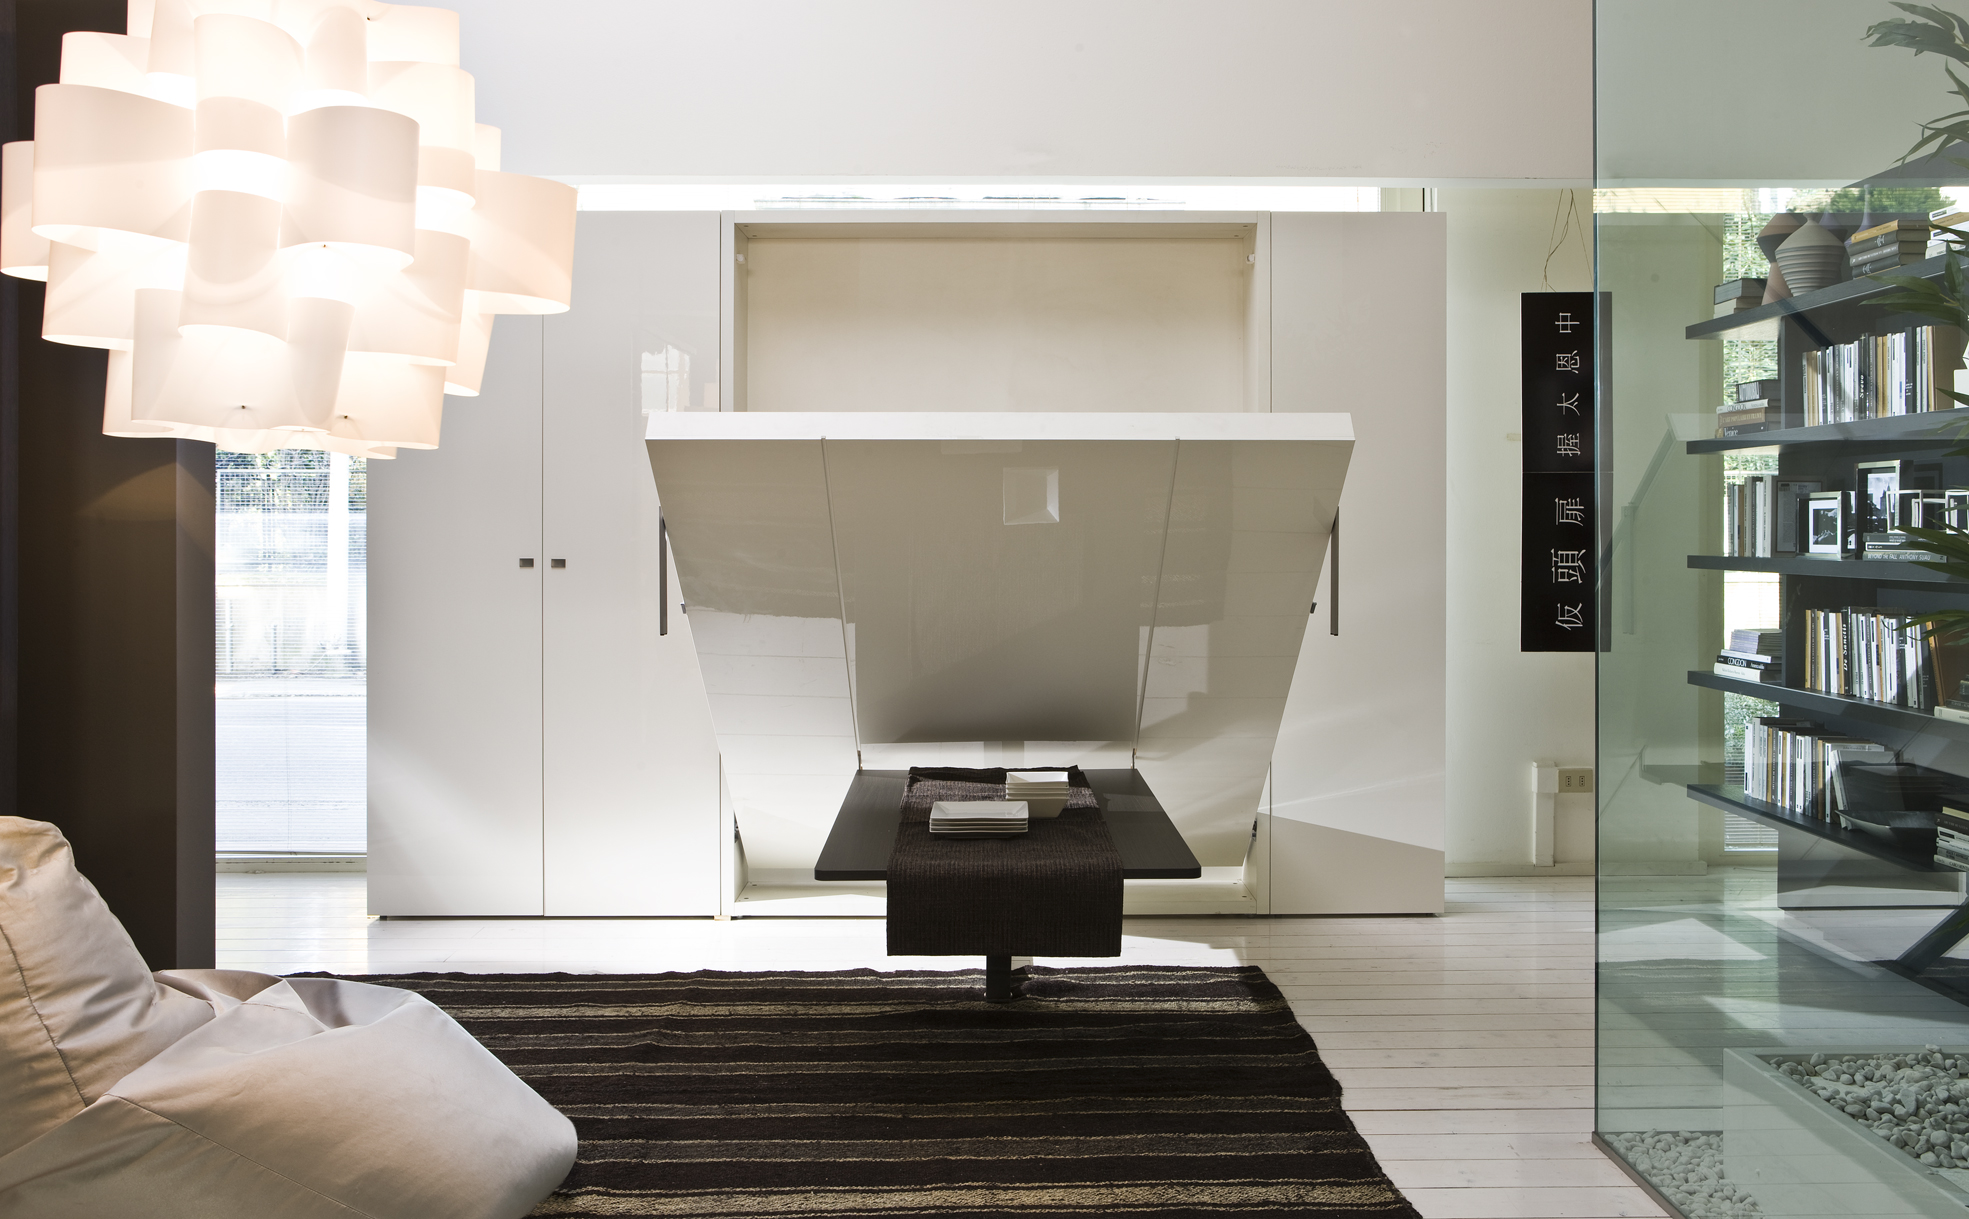 ulisse vertical collapsable wall bed system with table. Black Bedroom Furniture Sets. Home Design Ideas